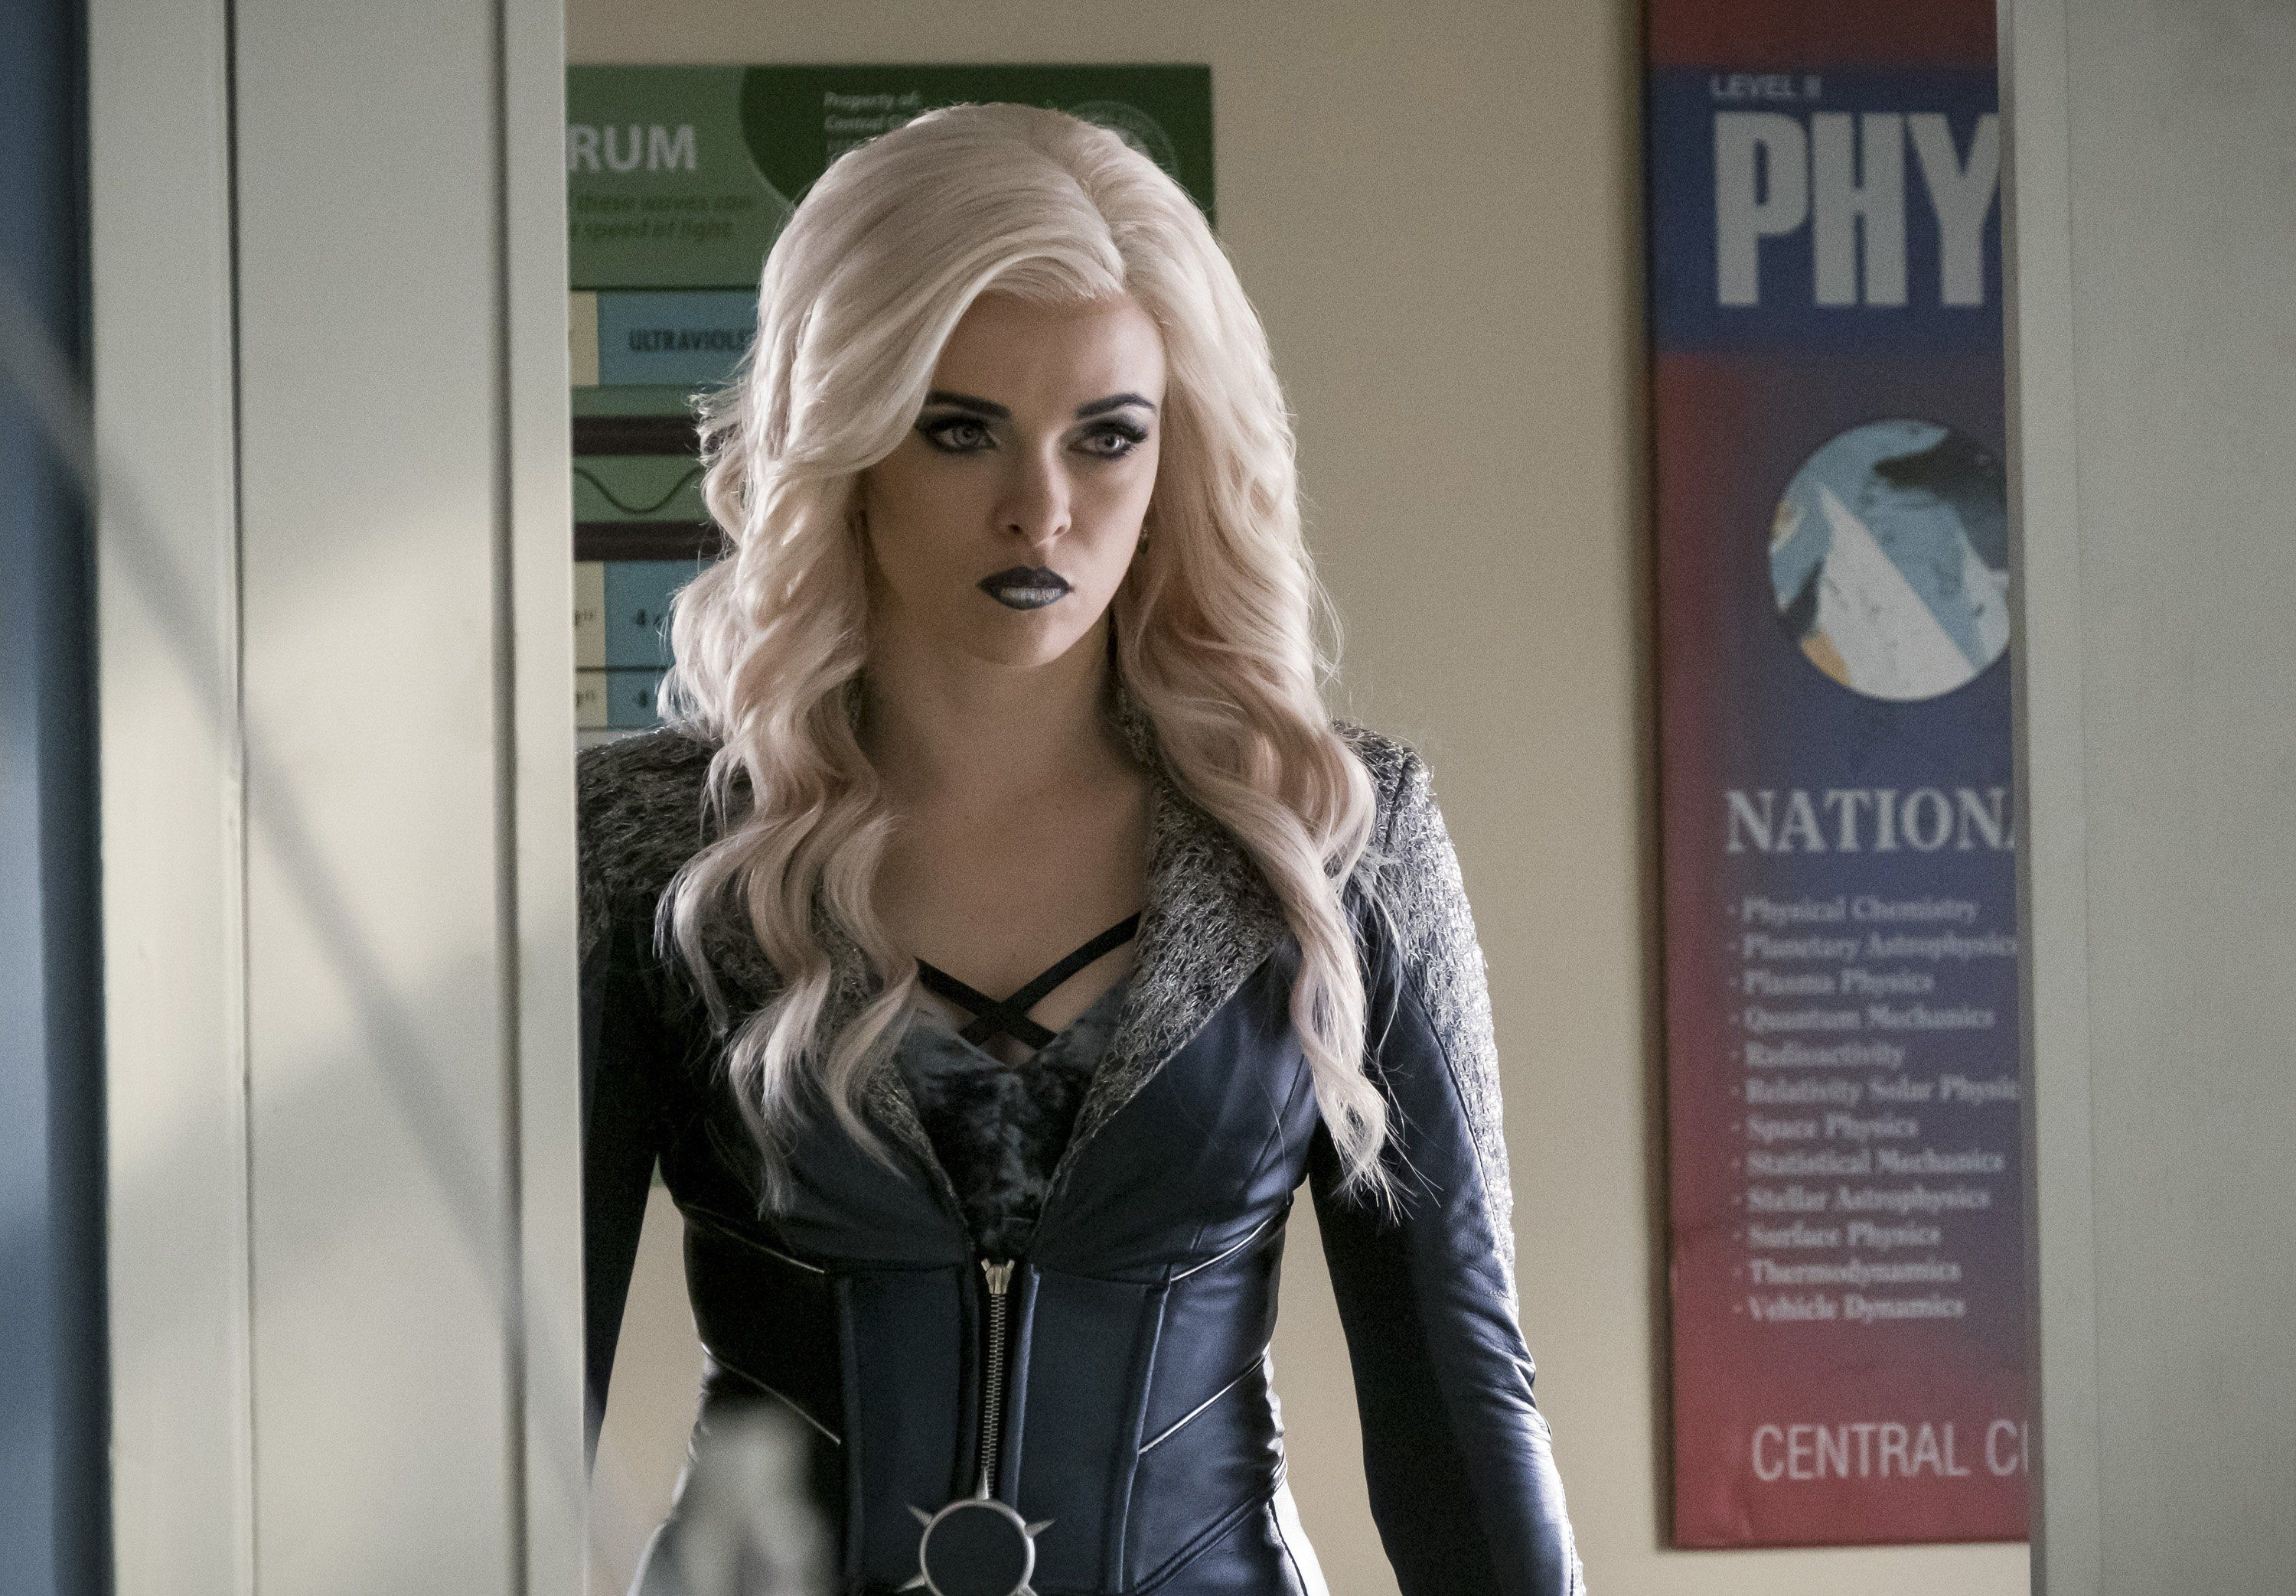 The Flash showrunner says Killer Frost will play a major part in season 6